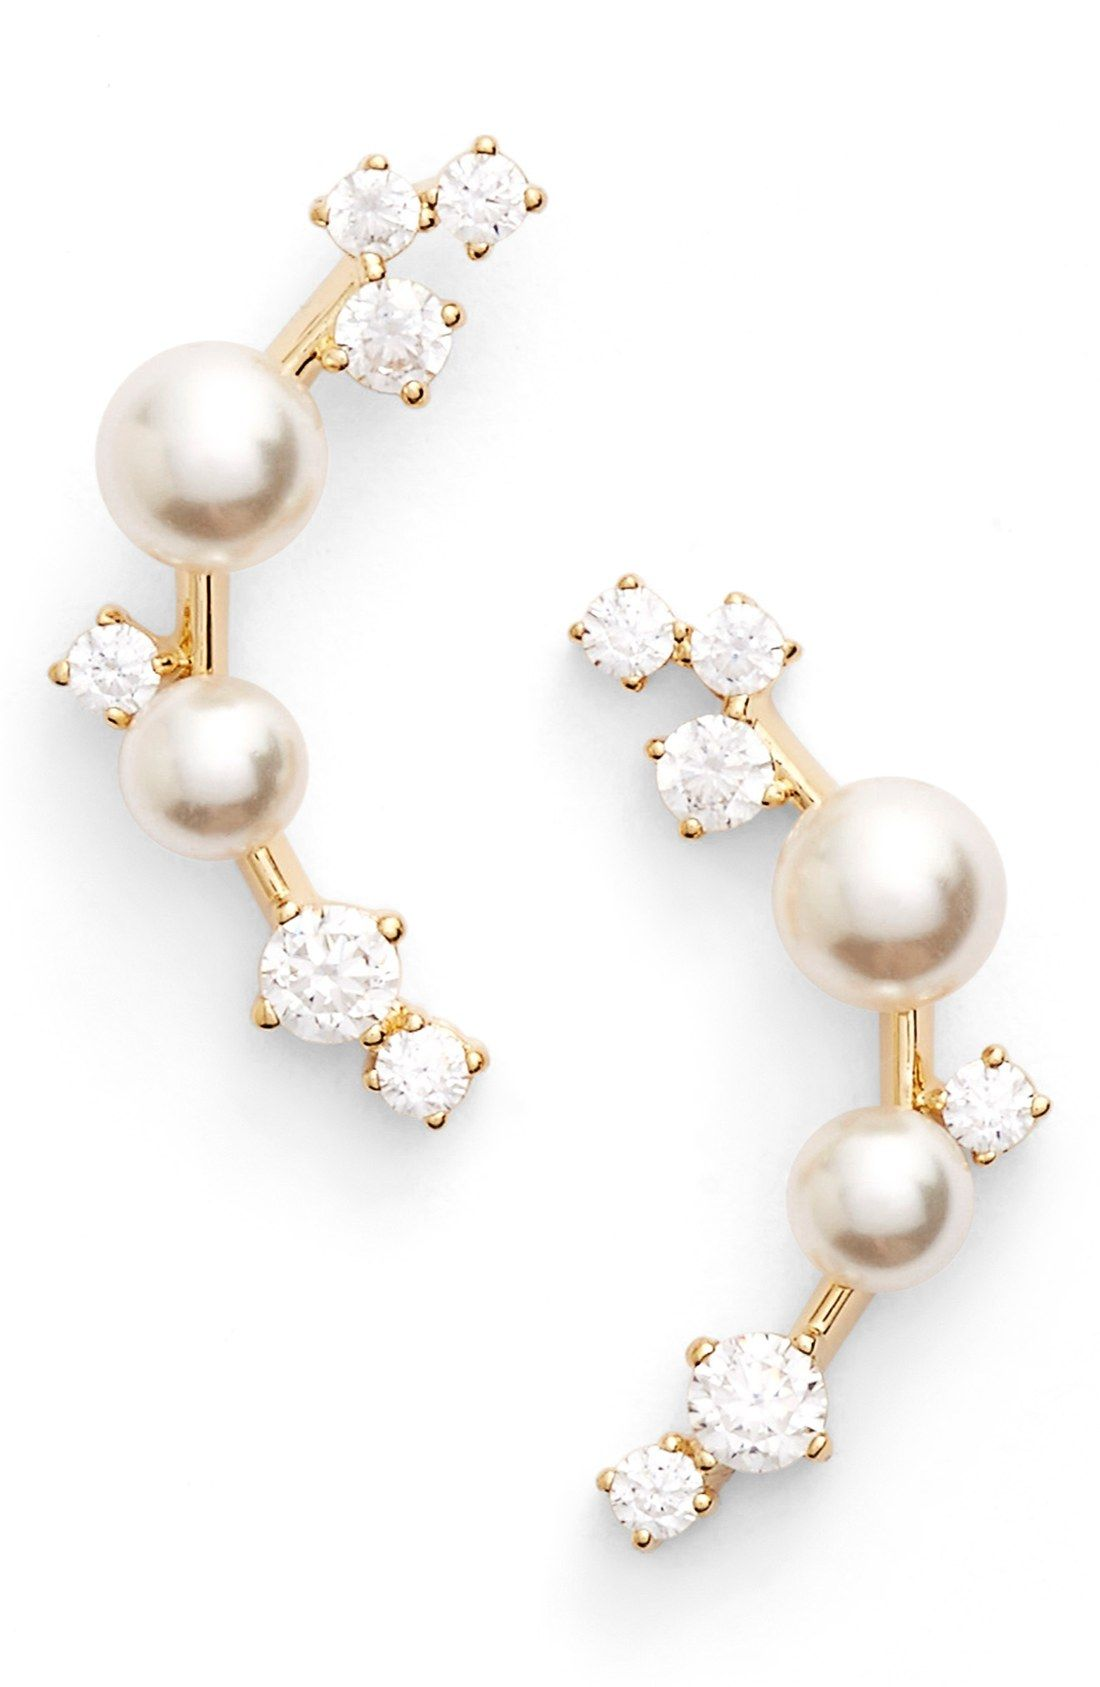 A sprinkling of cubiczirconia crystals and luminous glass pearls